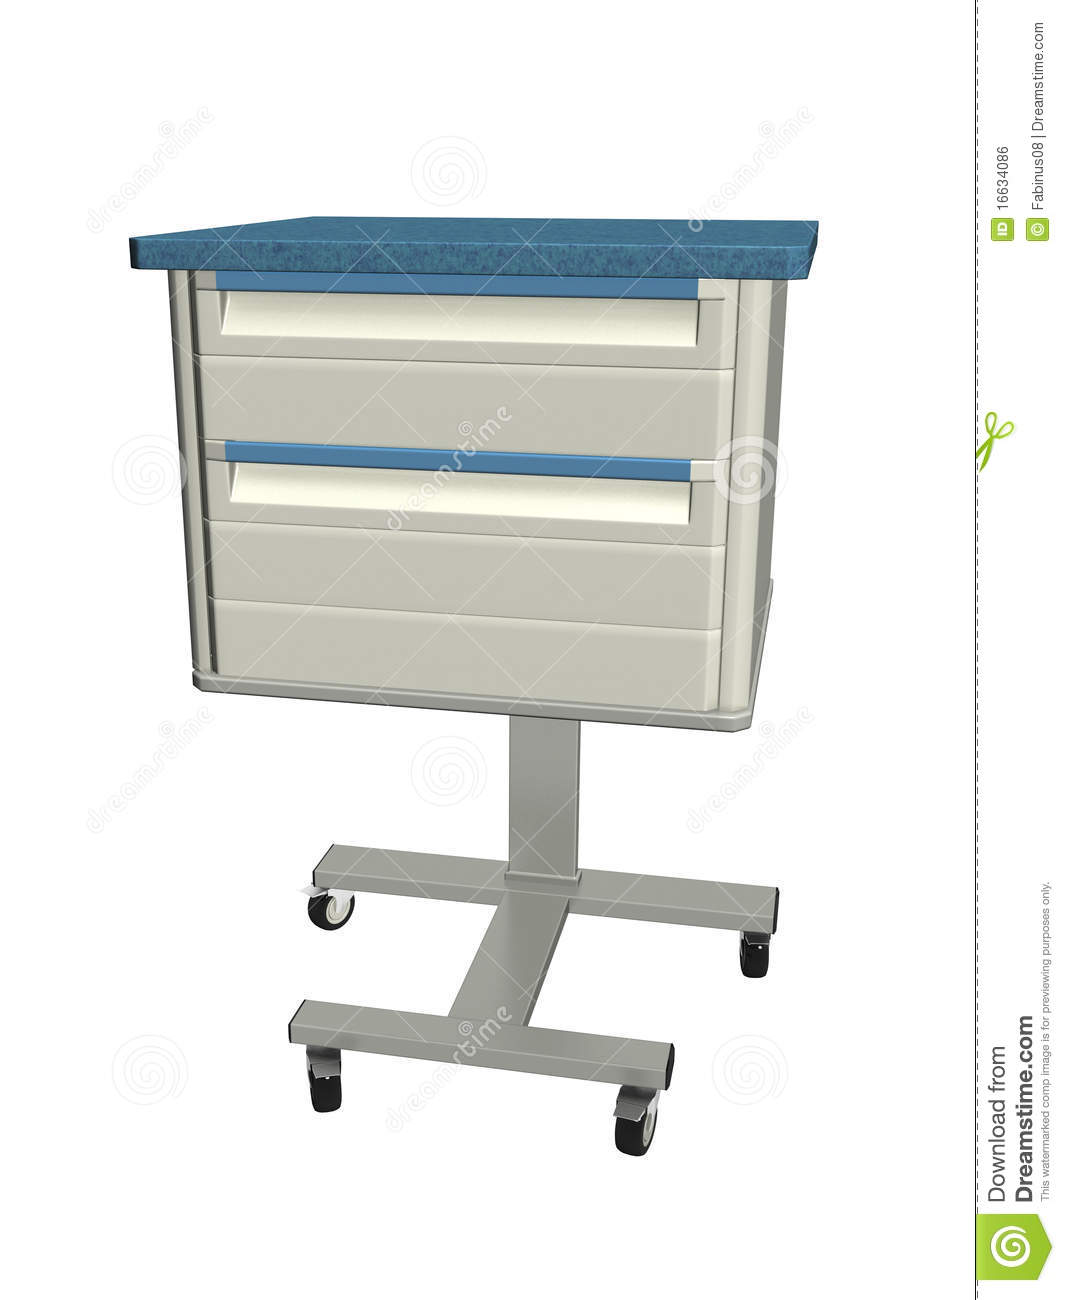 Medical Mobile Bedside Table Royalty Free Stock Image